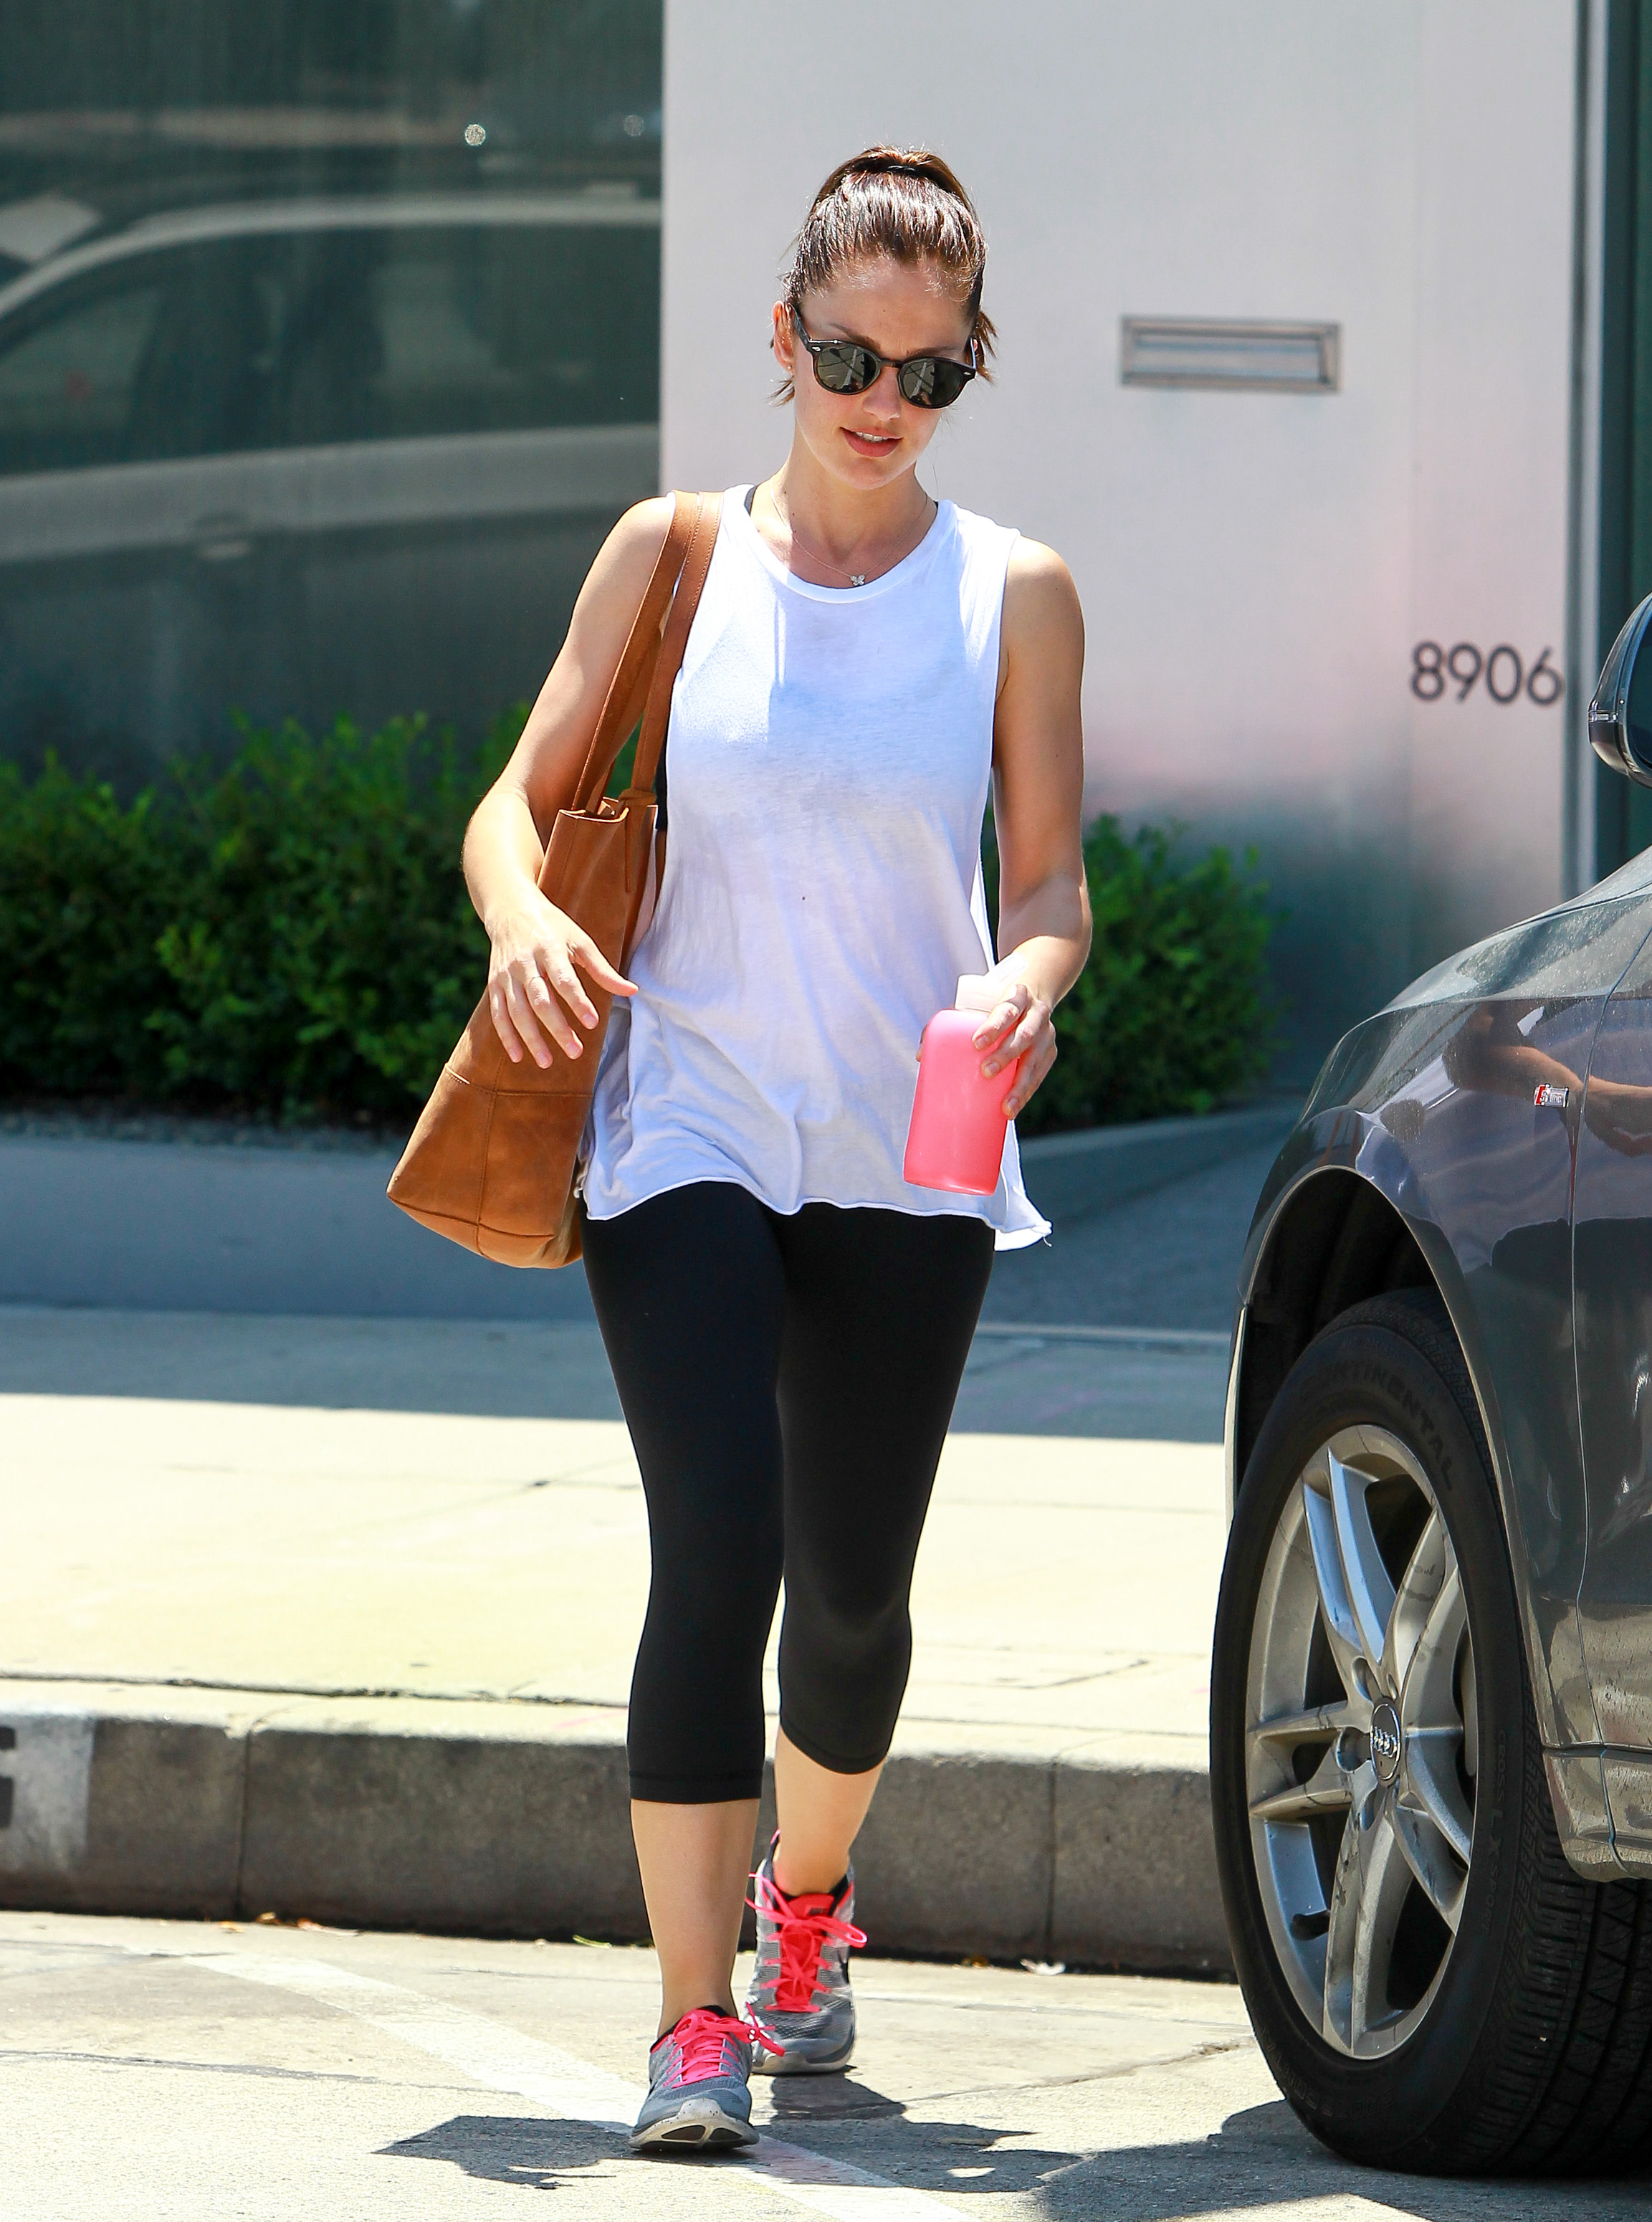 LOS ANGELES, CA - JULY 30: Minka Kelly is seen on July 30, 2014 in Los Angeles, California. (Photo by Bauer-Griffin/GC Images)